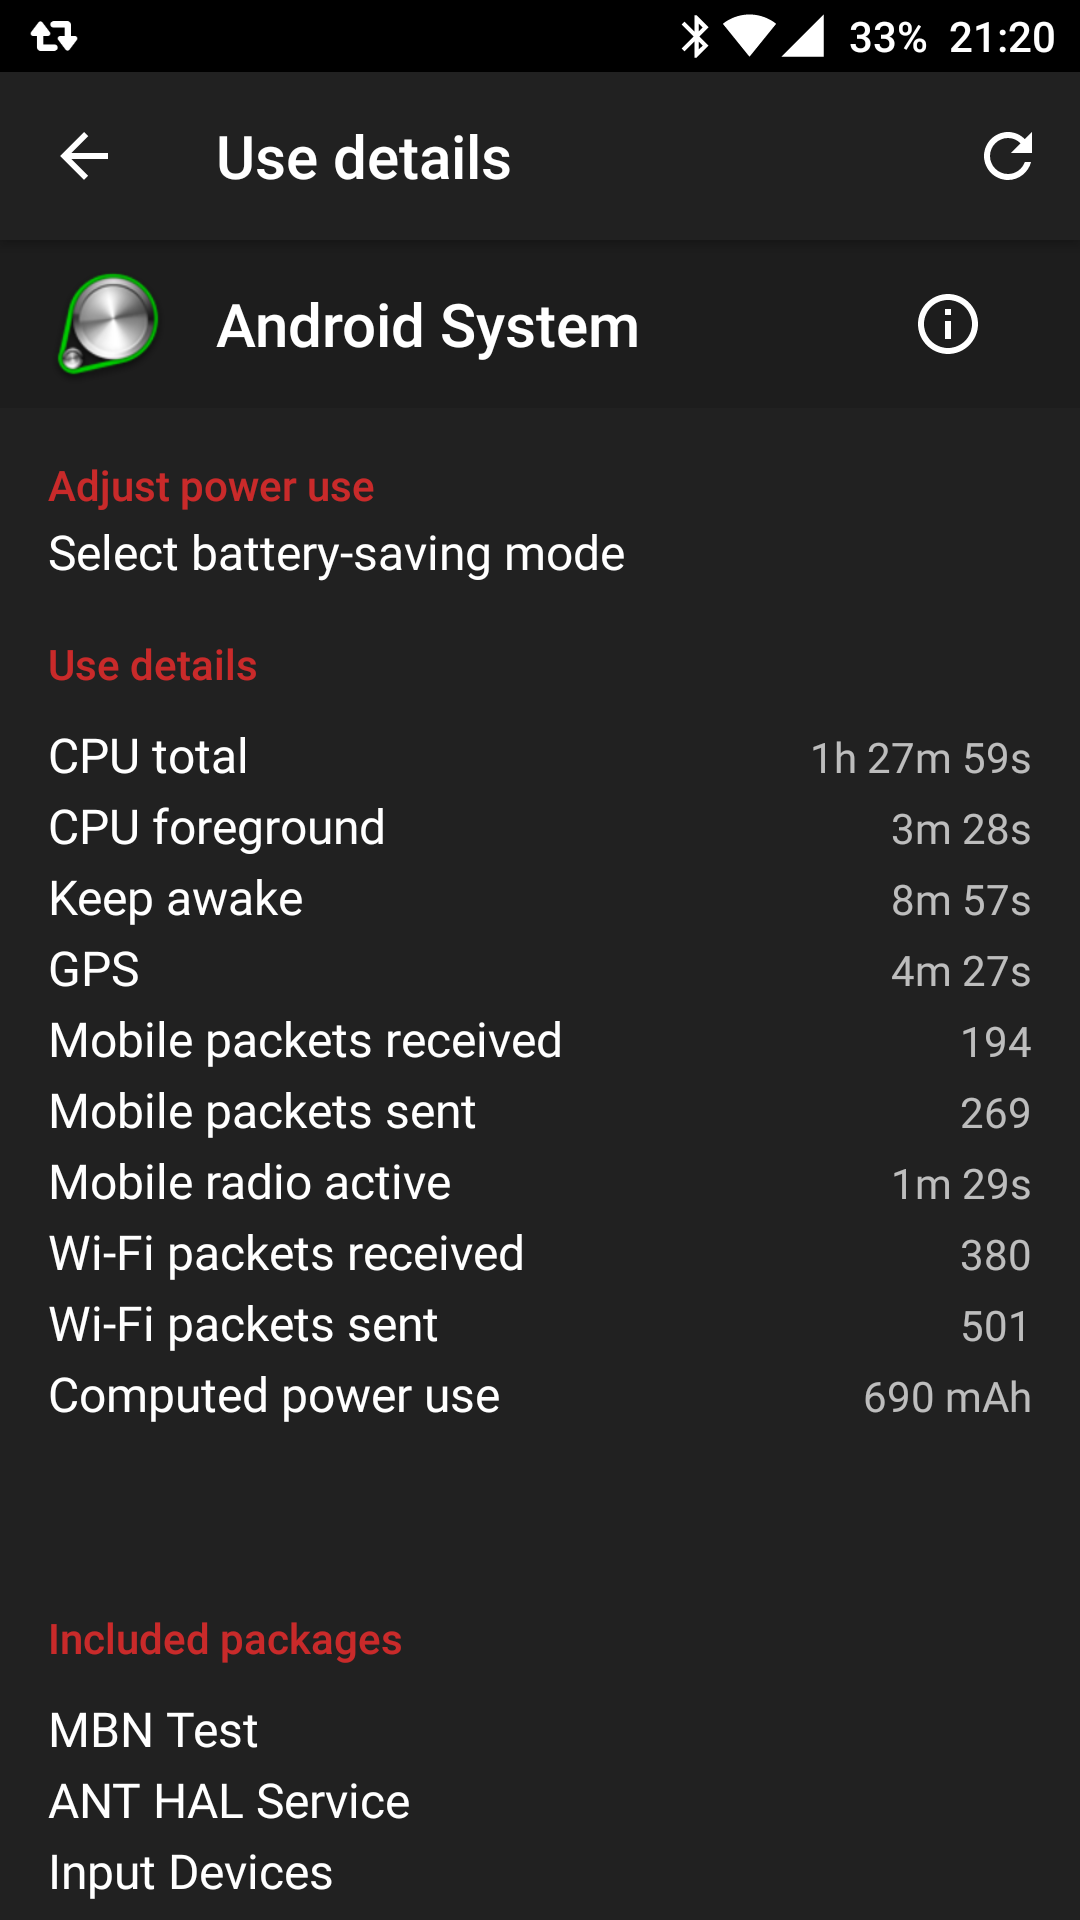 Android System battery drain (FIX) - OnePlus Community